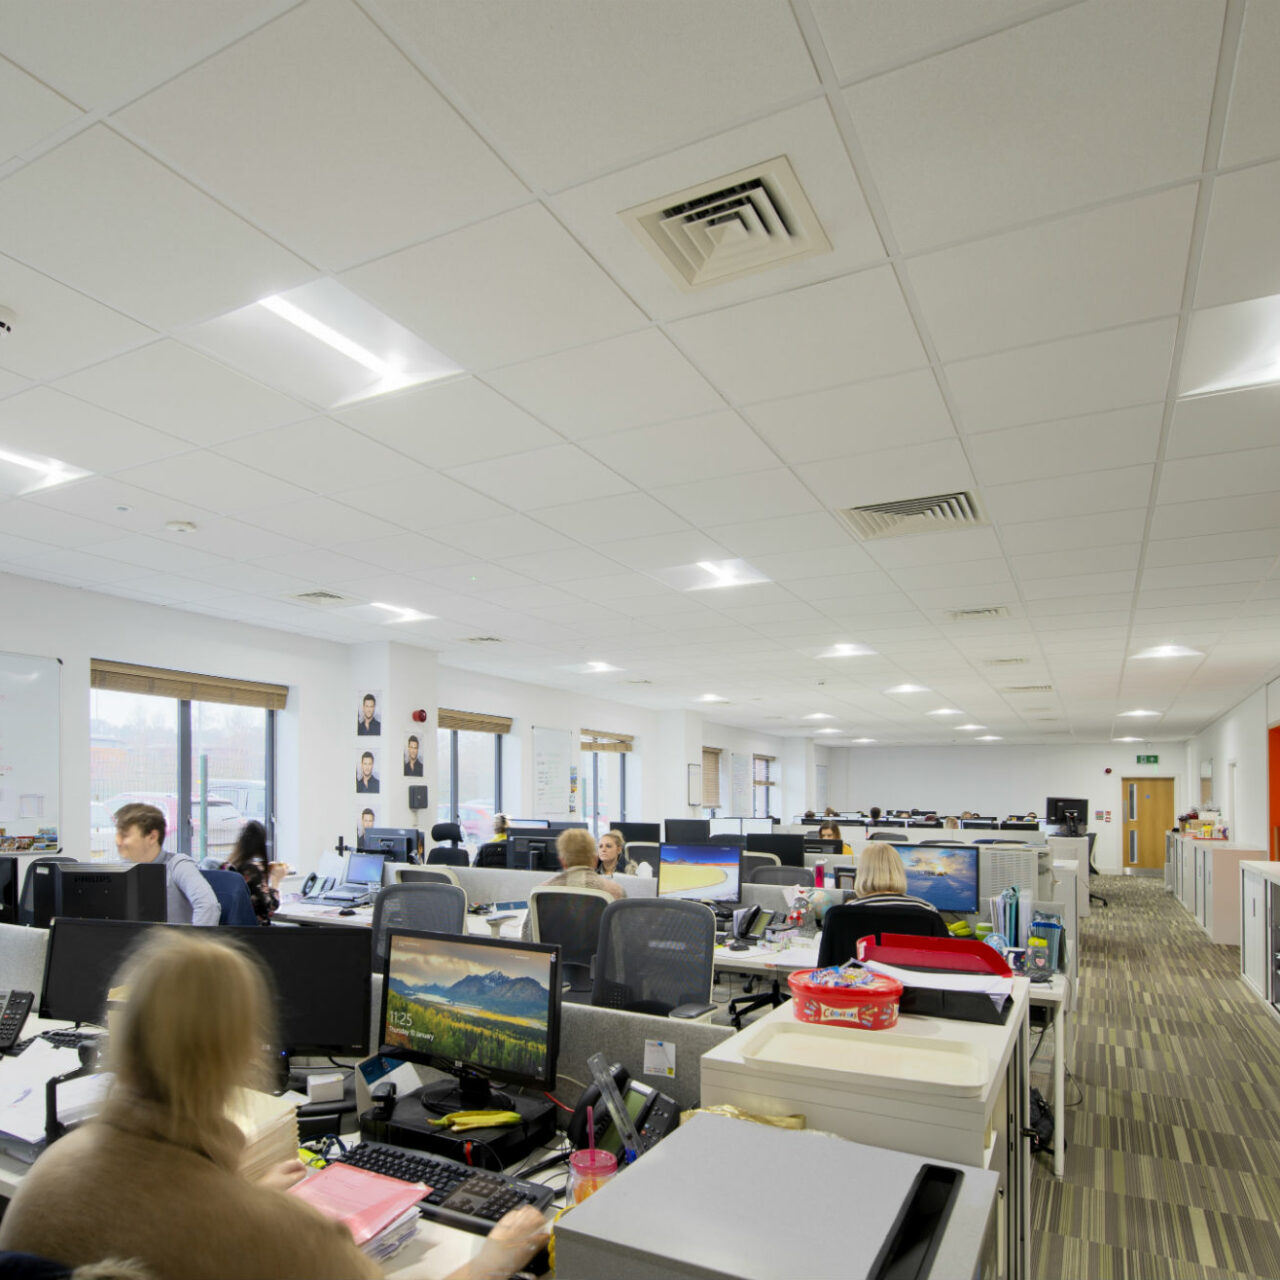 Lighting for Wellbeing: Lighting project for insurance company puts staff first